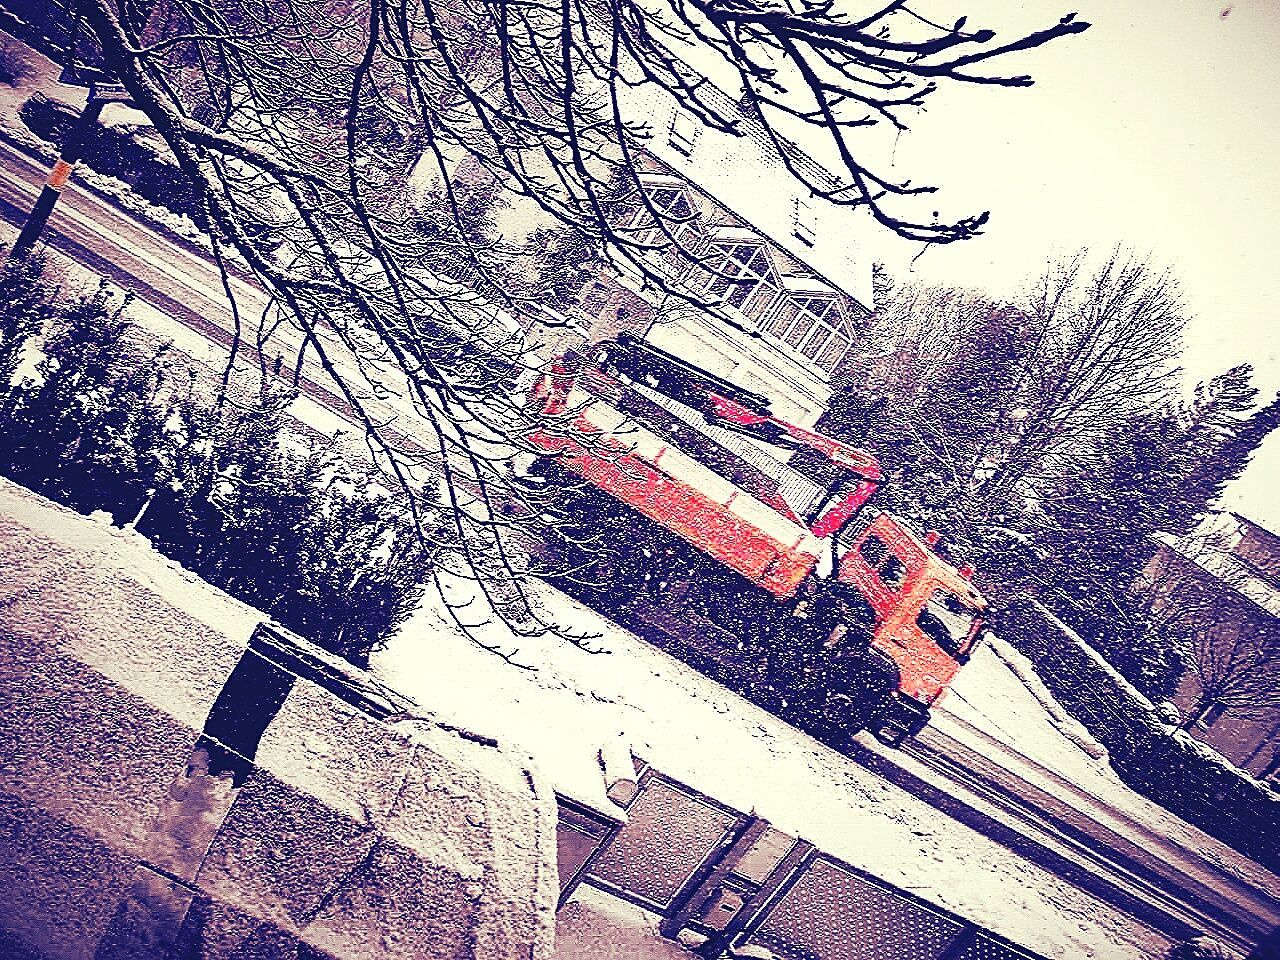 Snowing day Life In Germany My Point Of View My Capture  Check This Out Eyeem Photography Outdoor Photography Eyeem Beautiful Nature EyeEm Nature Collection EyeEm Outdoors EyeEm Nature Lover The Week Of Eyeem Fresh On Eyeem  Hello World Good Morning Snowing Morning München Munich, Germany GERMANY🇩🇪DEUTSCHERLAND@ Tree Branches Colour Of Life Snow Covered Road View From My Window Residential Area Streetview